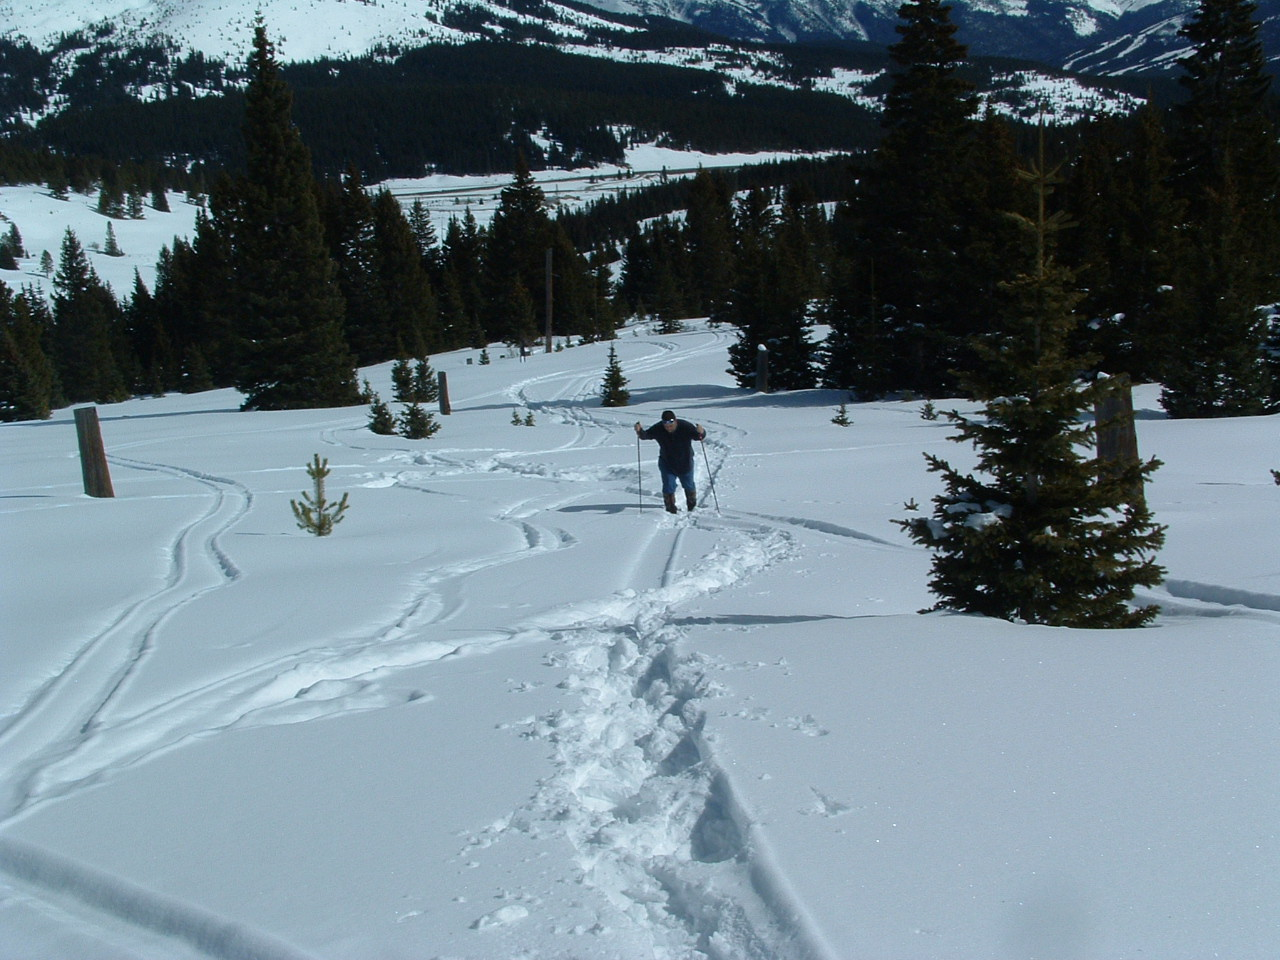 snowshoer with poles far off in the distance